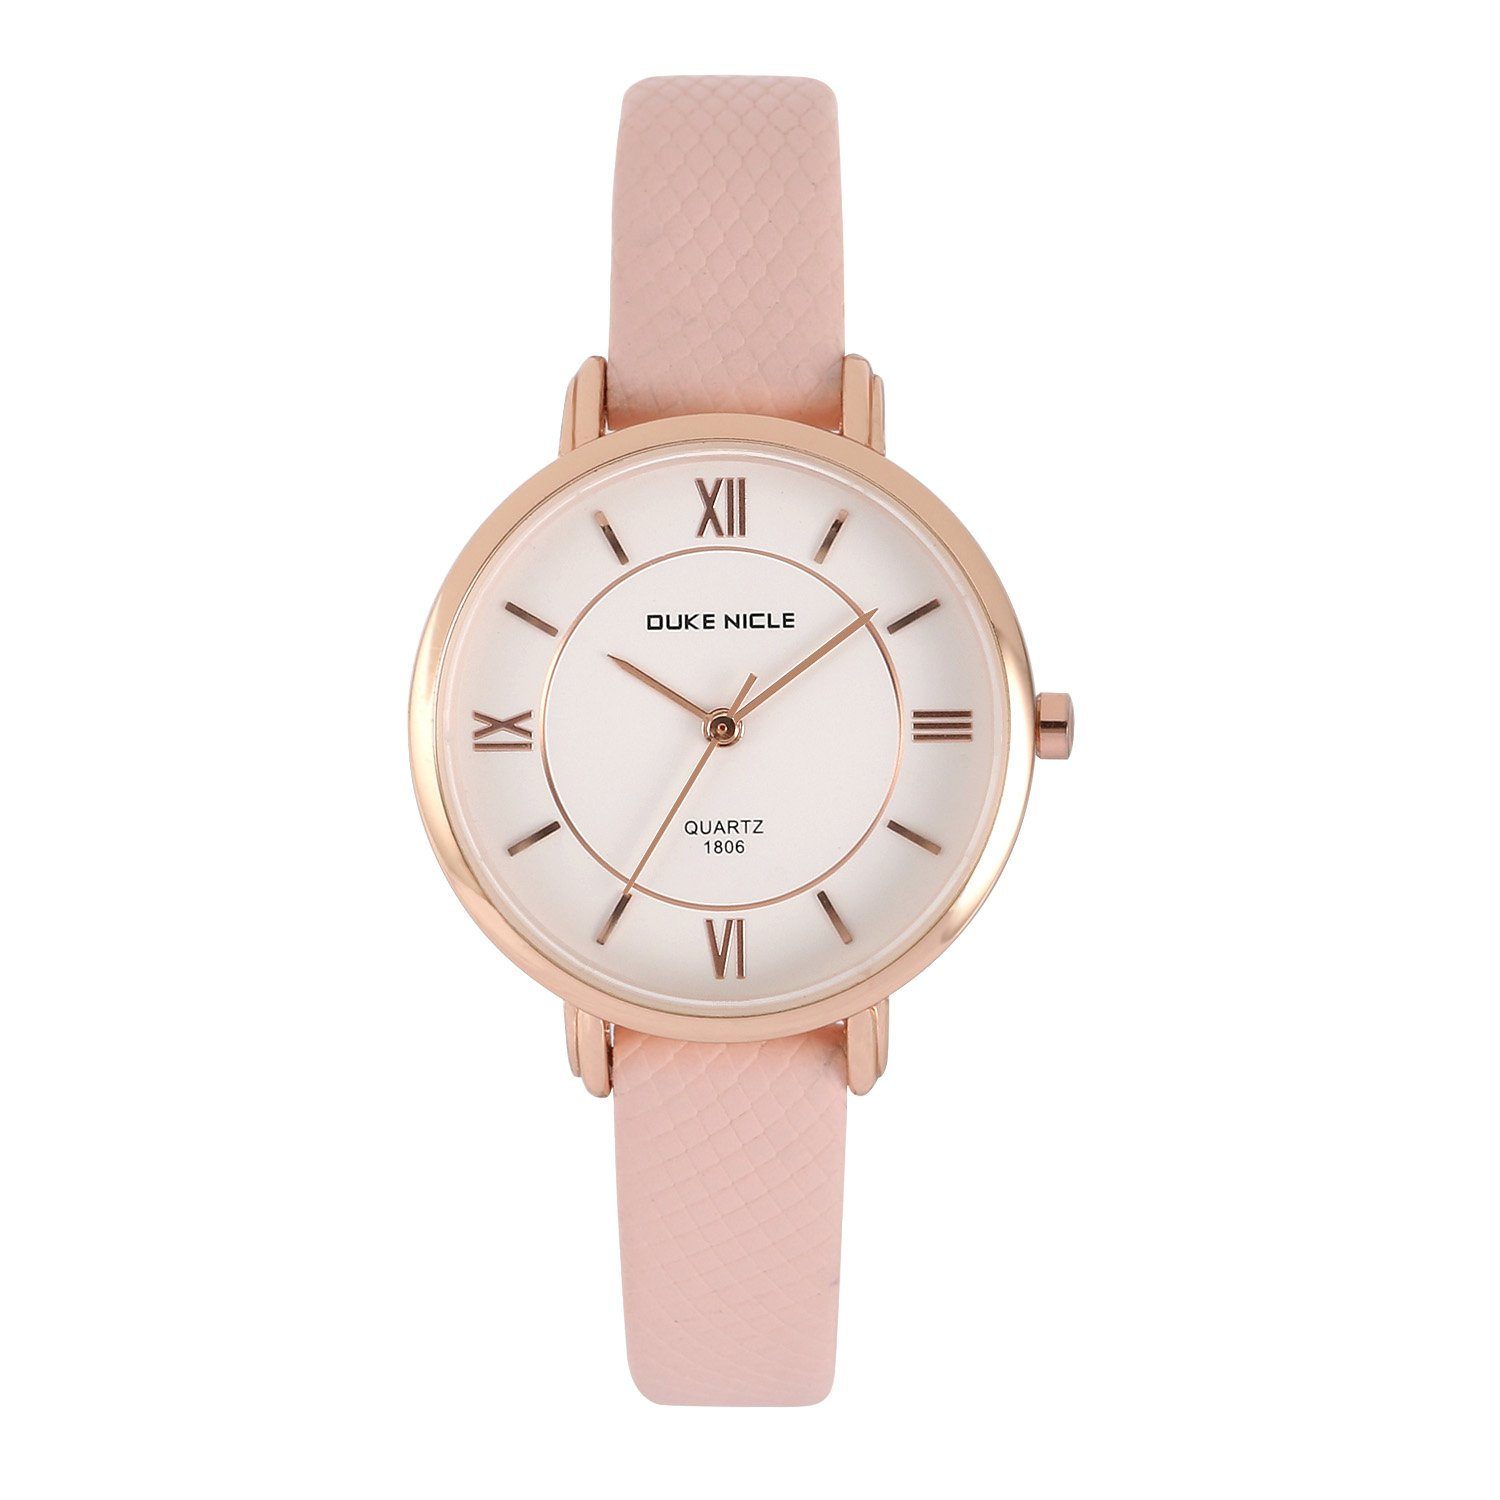 Womens Fashion Watch,Ladies Elegant Casual Waterproof Quartz Roman Numeral Wrist Watches for Girls with Comfortable Genuine Leather Band (Pink)